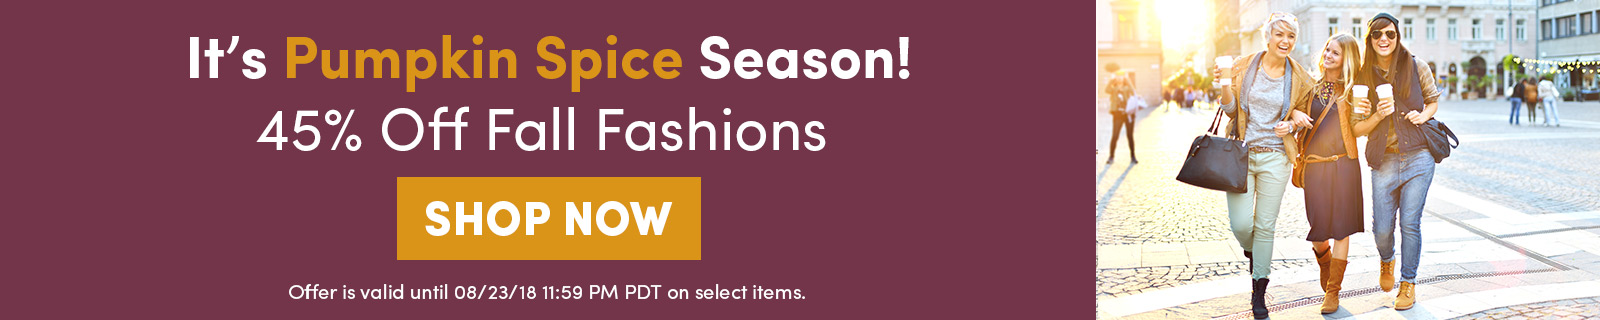 It's Pumpkin Spice Season! 45% Off Fall Fashions SHOP SALE